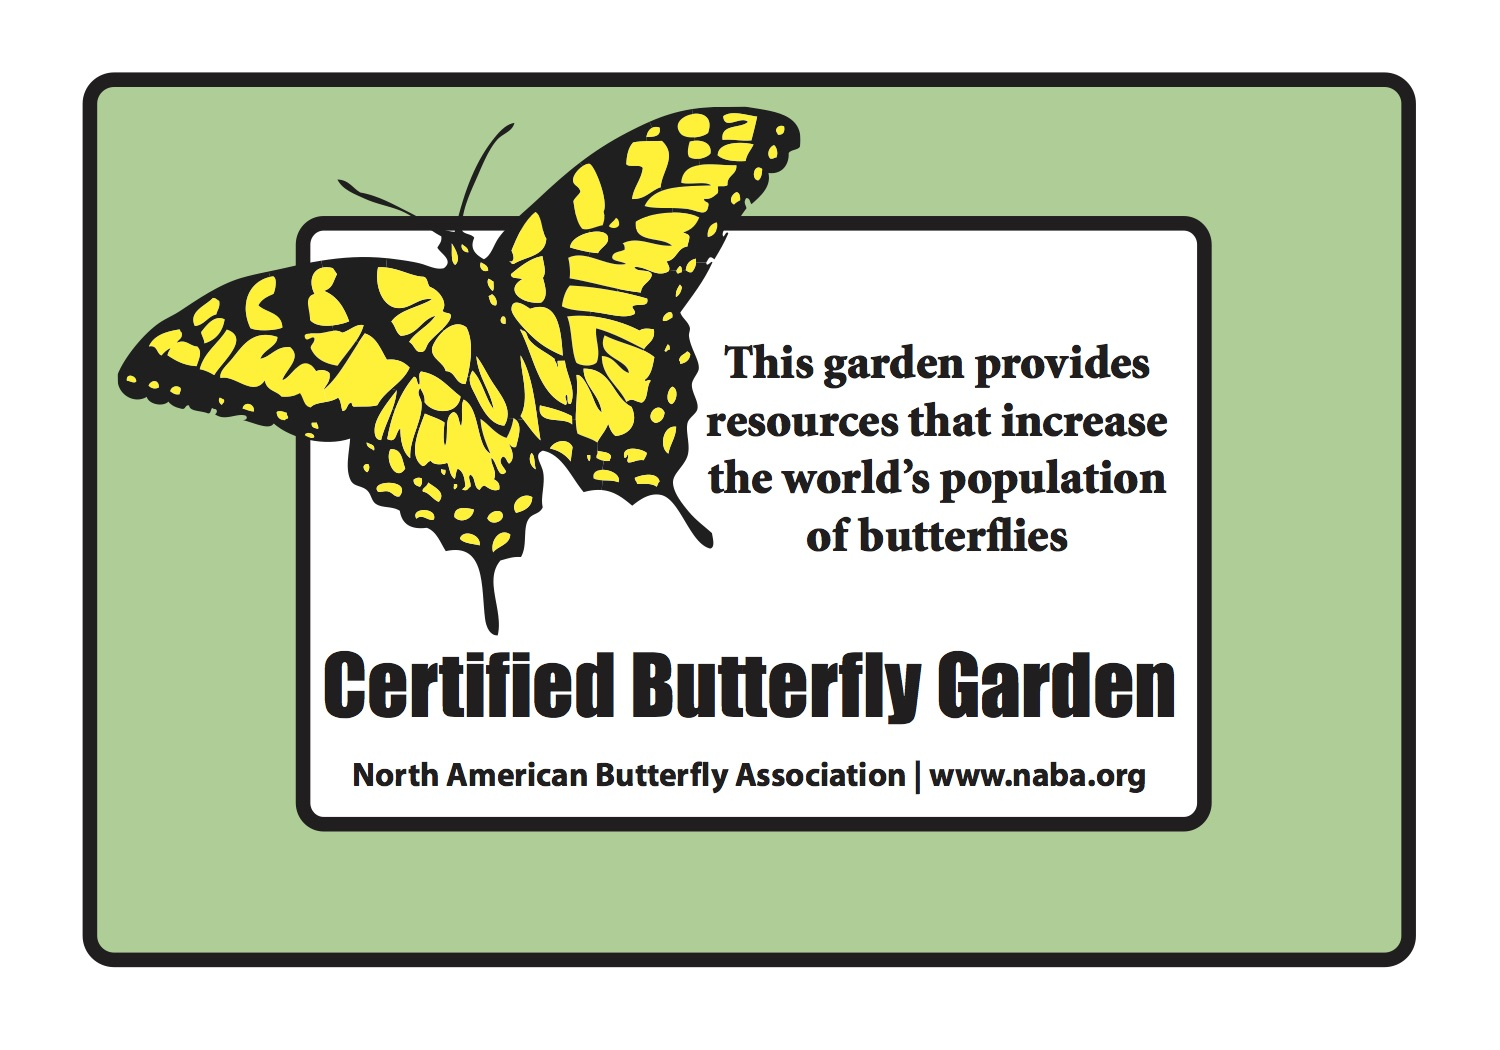 NABA Certified Butterfly Gardeners May Purchase An Outdoor, Weatherproof  Certification Sign With A Swallowtail Image